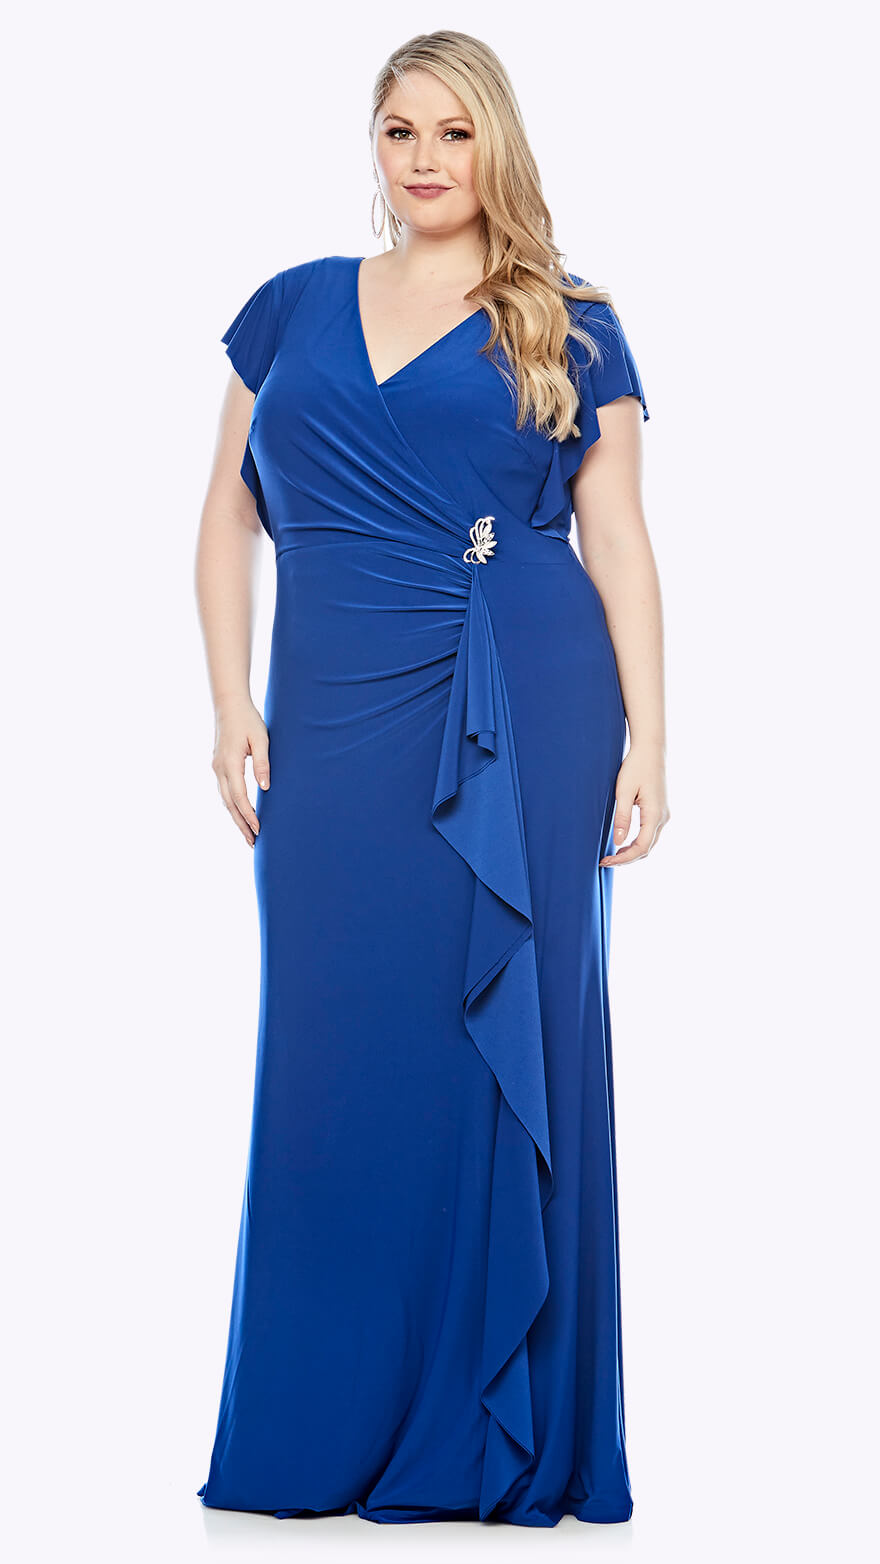 LJ0391 V neck wrap style gown with brooch detail